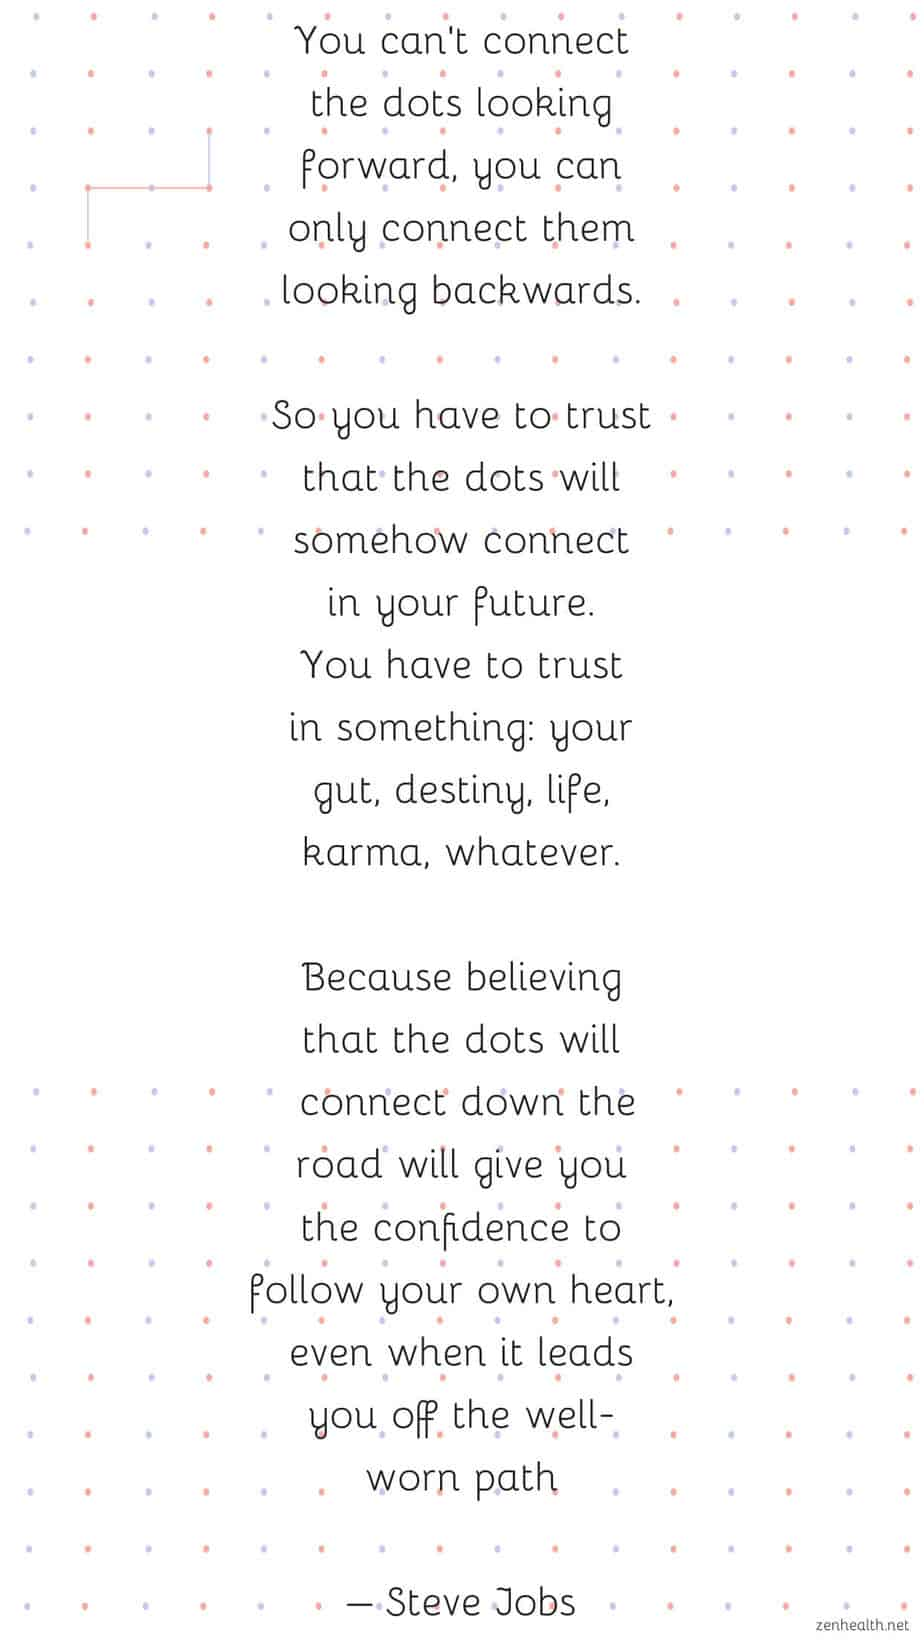 Steve Jobs quote: You can't connect the dots looking forward, you can only connect them looking backwards...